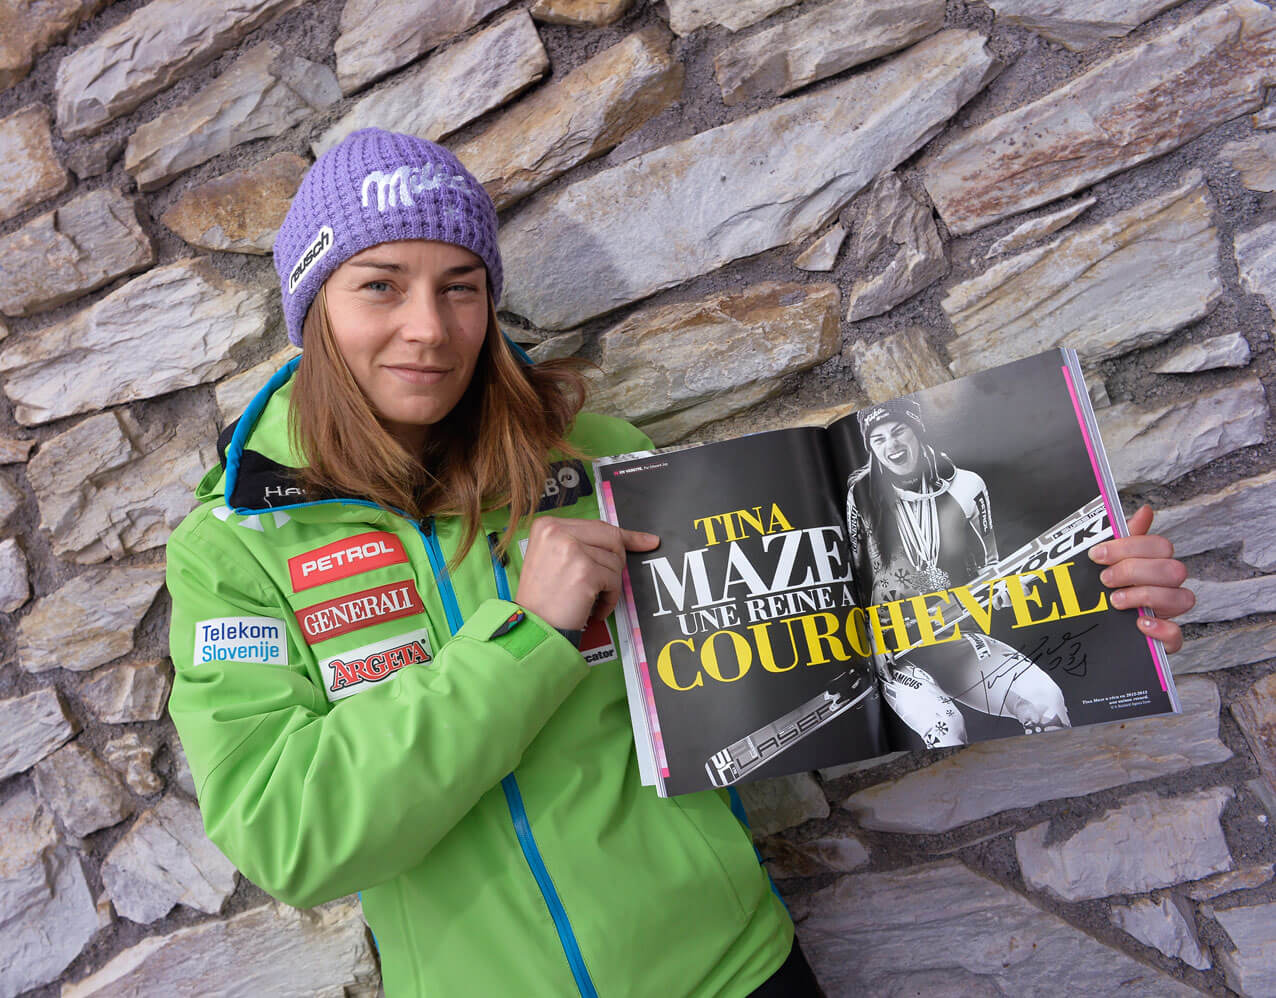 Tina Maze Magazine Courchevel